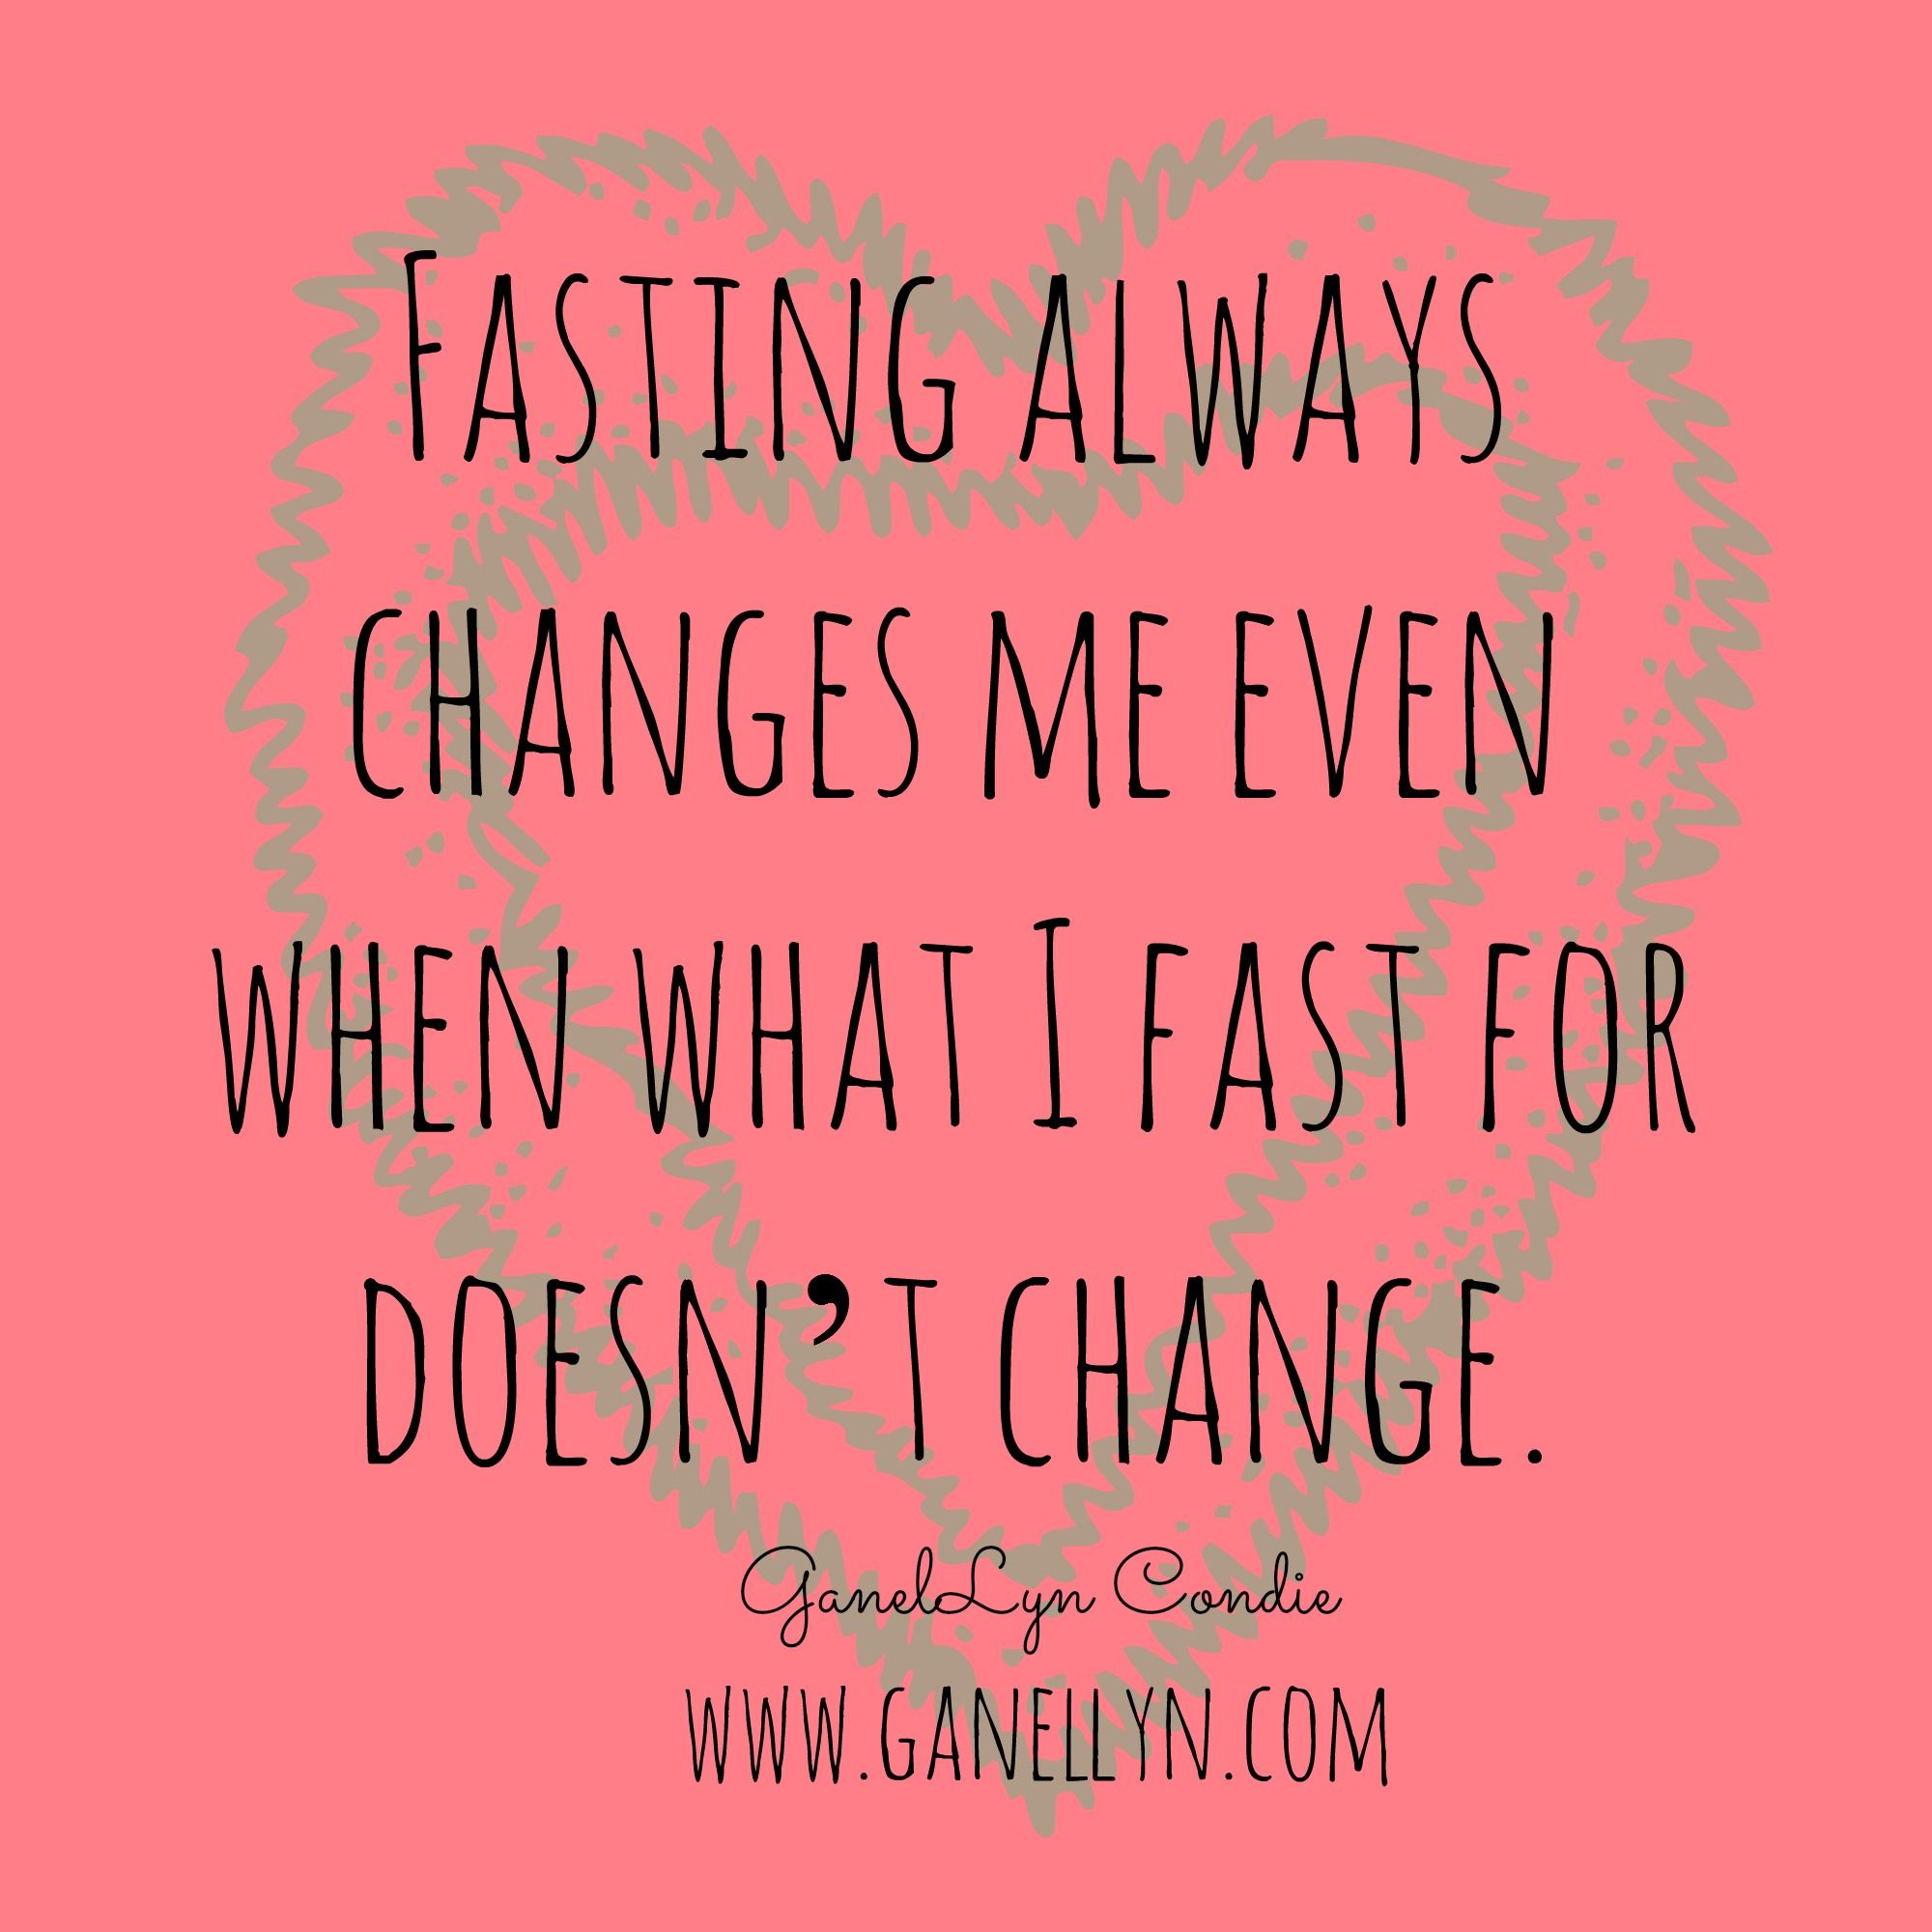 Lds missionary quotes or thoughts quotesgram - Lds Quotes On Fasting Quotesgram